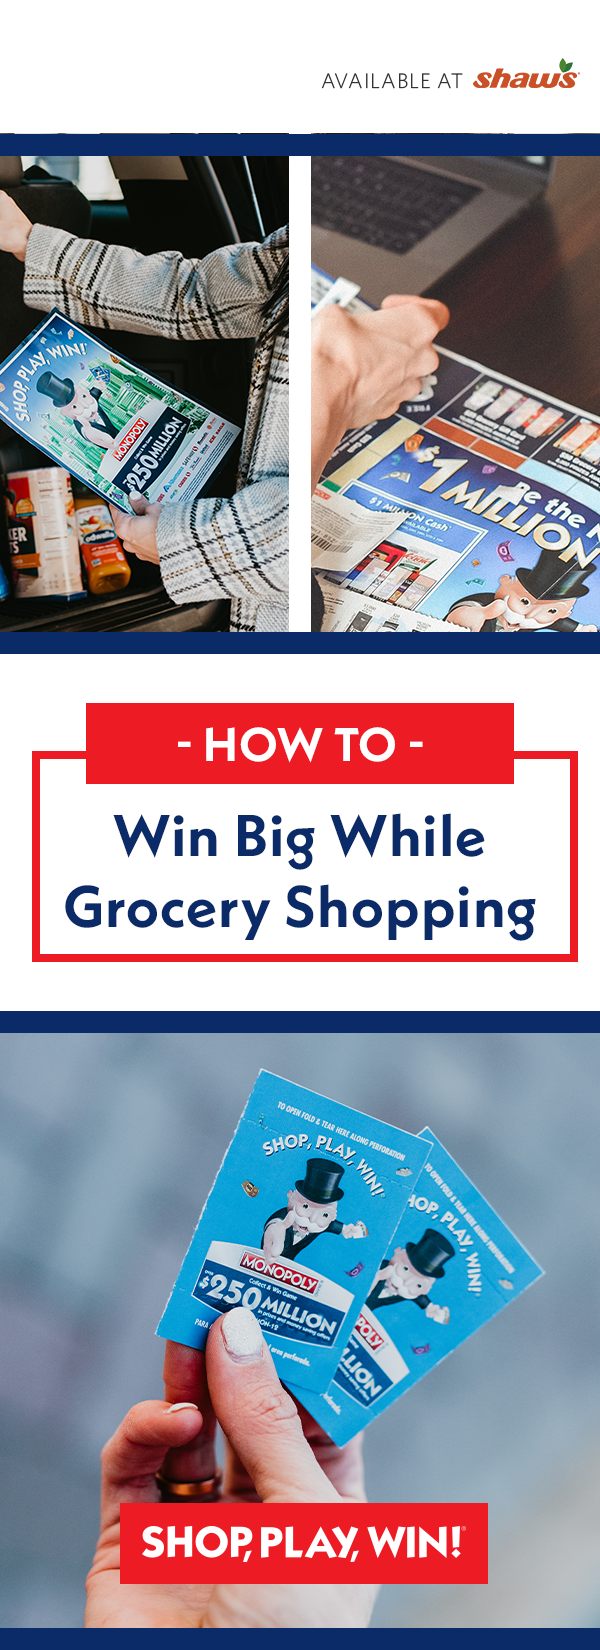 Albertsons Monopoly is Here! Grocery essentials